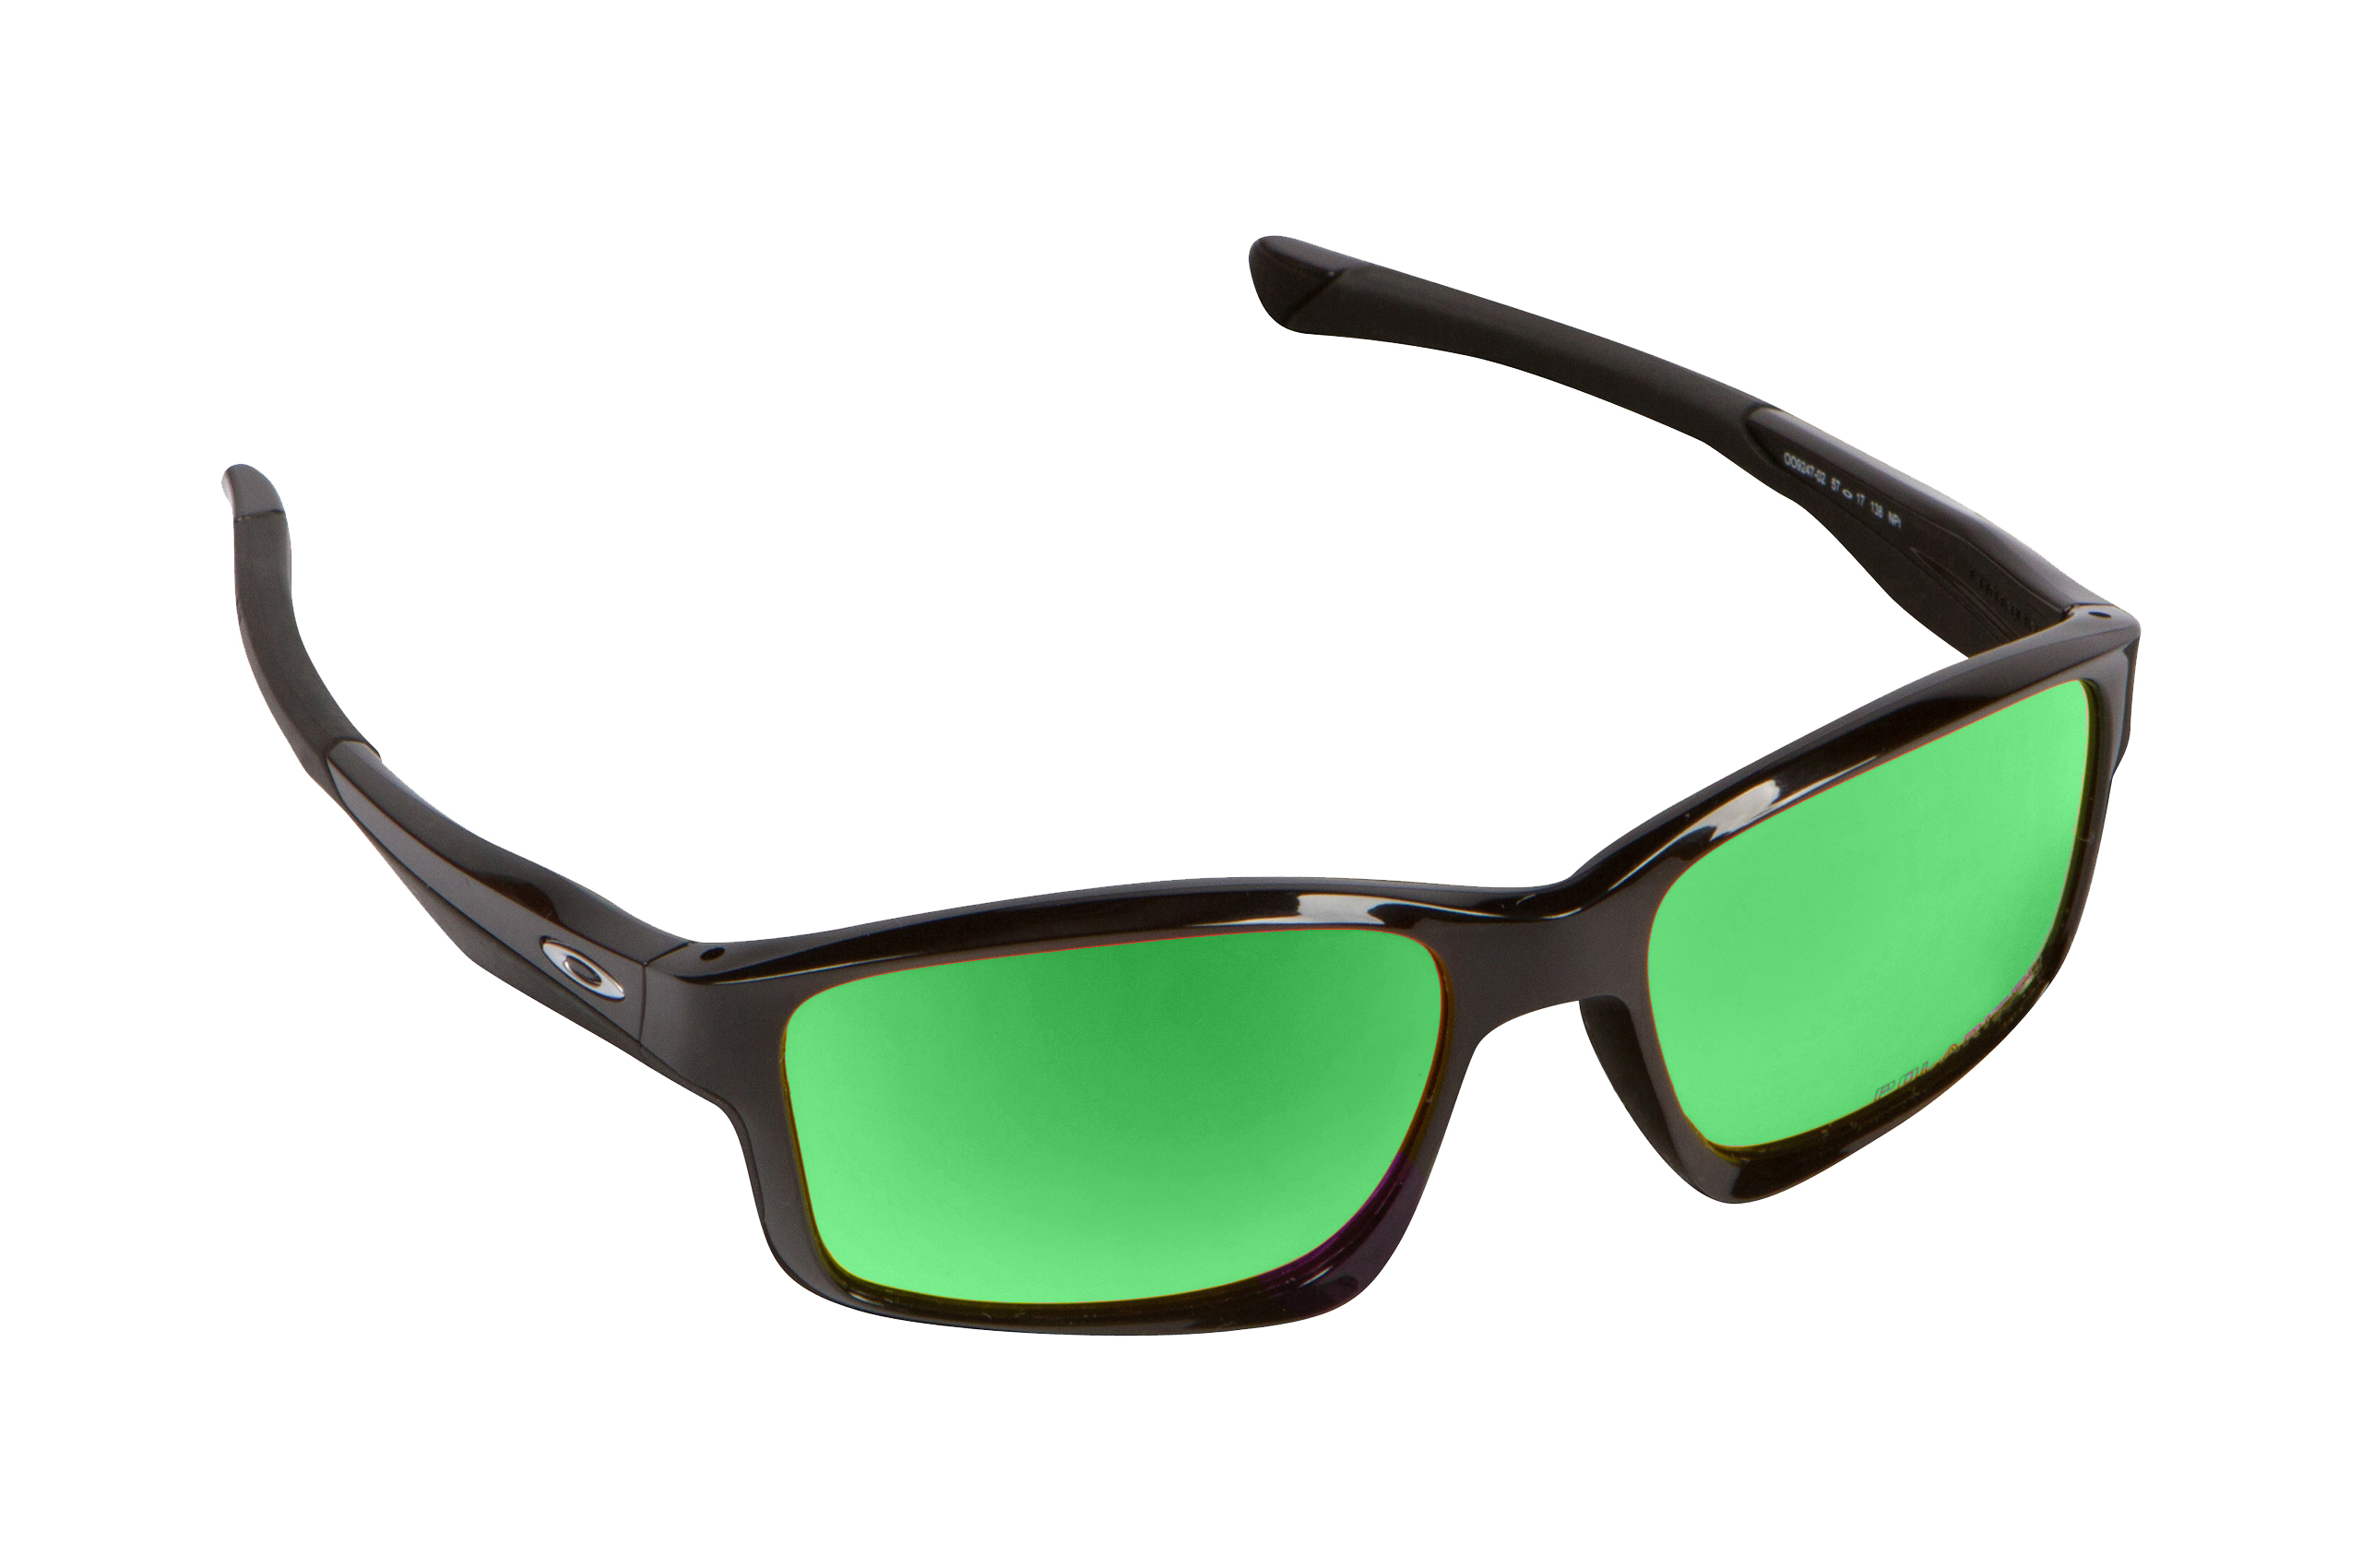 0dcac236c8 3. CHAINLINK Replacement Lenses Polarized Green by SEEK fits OAKLEY  Sunglasses